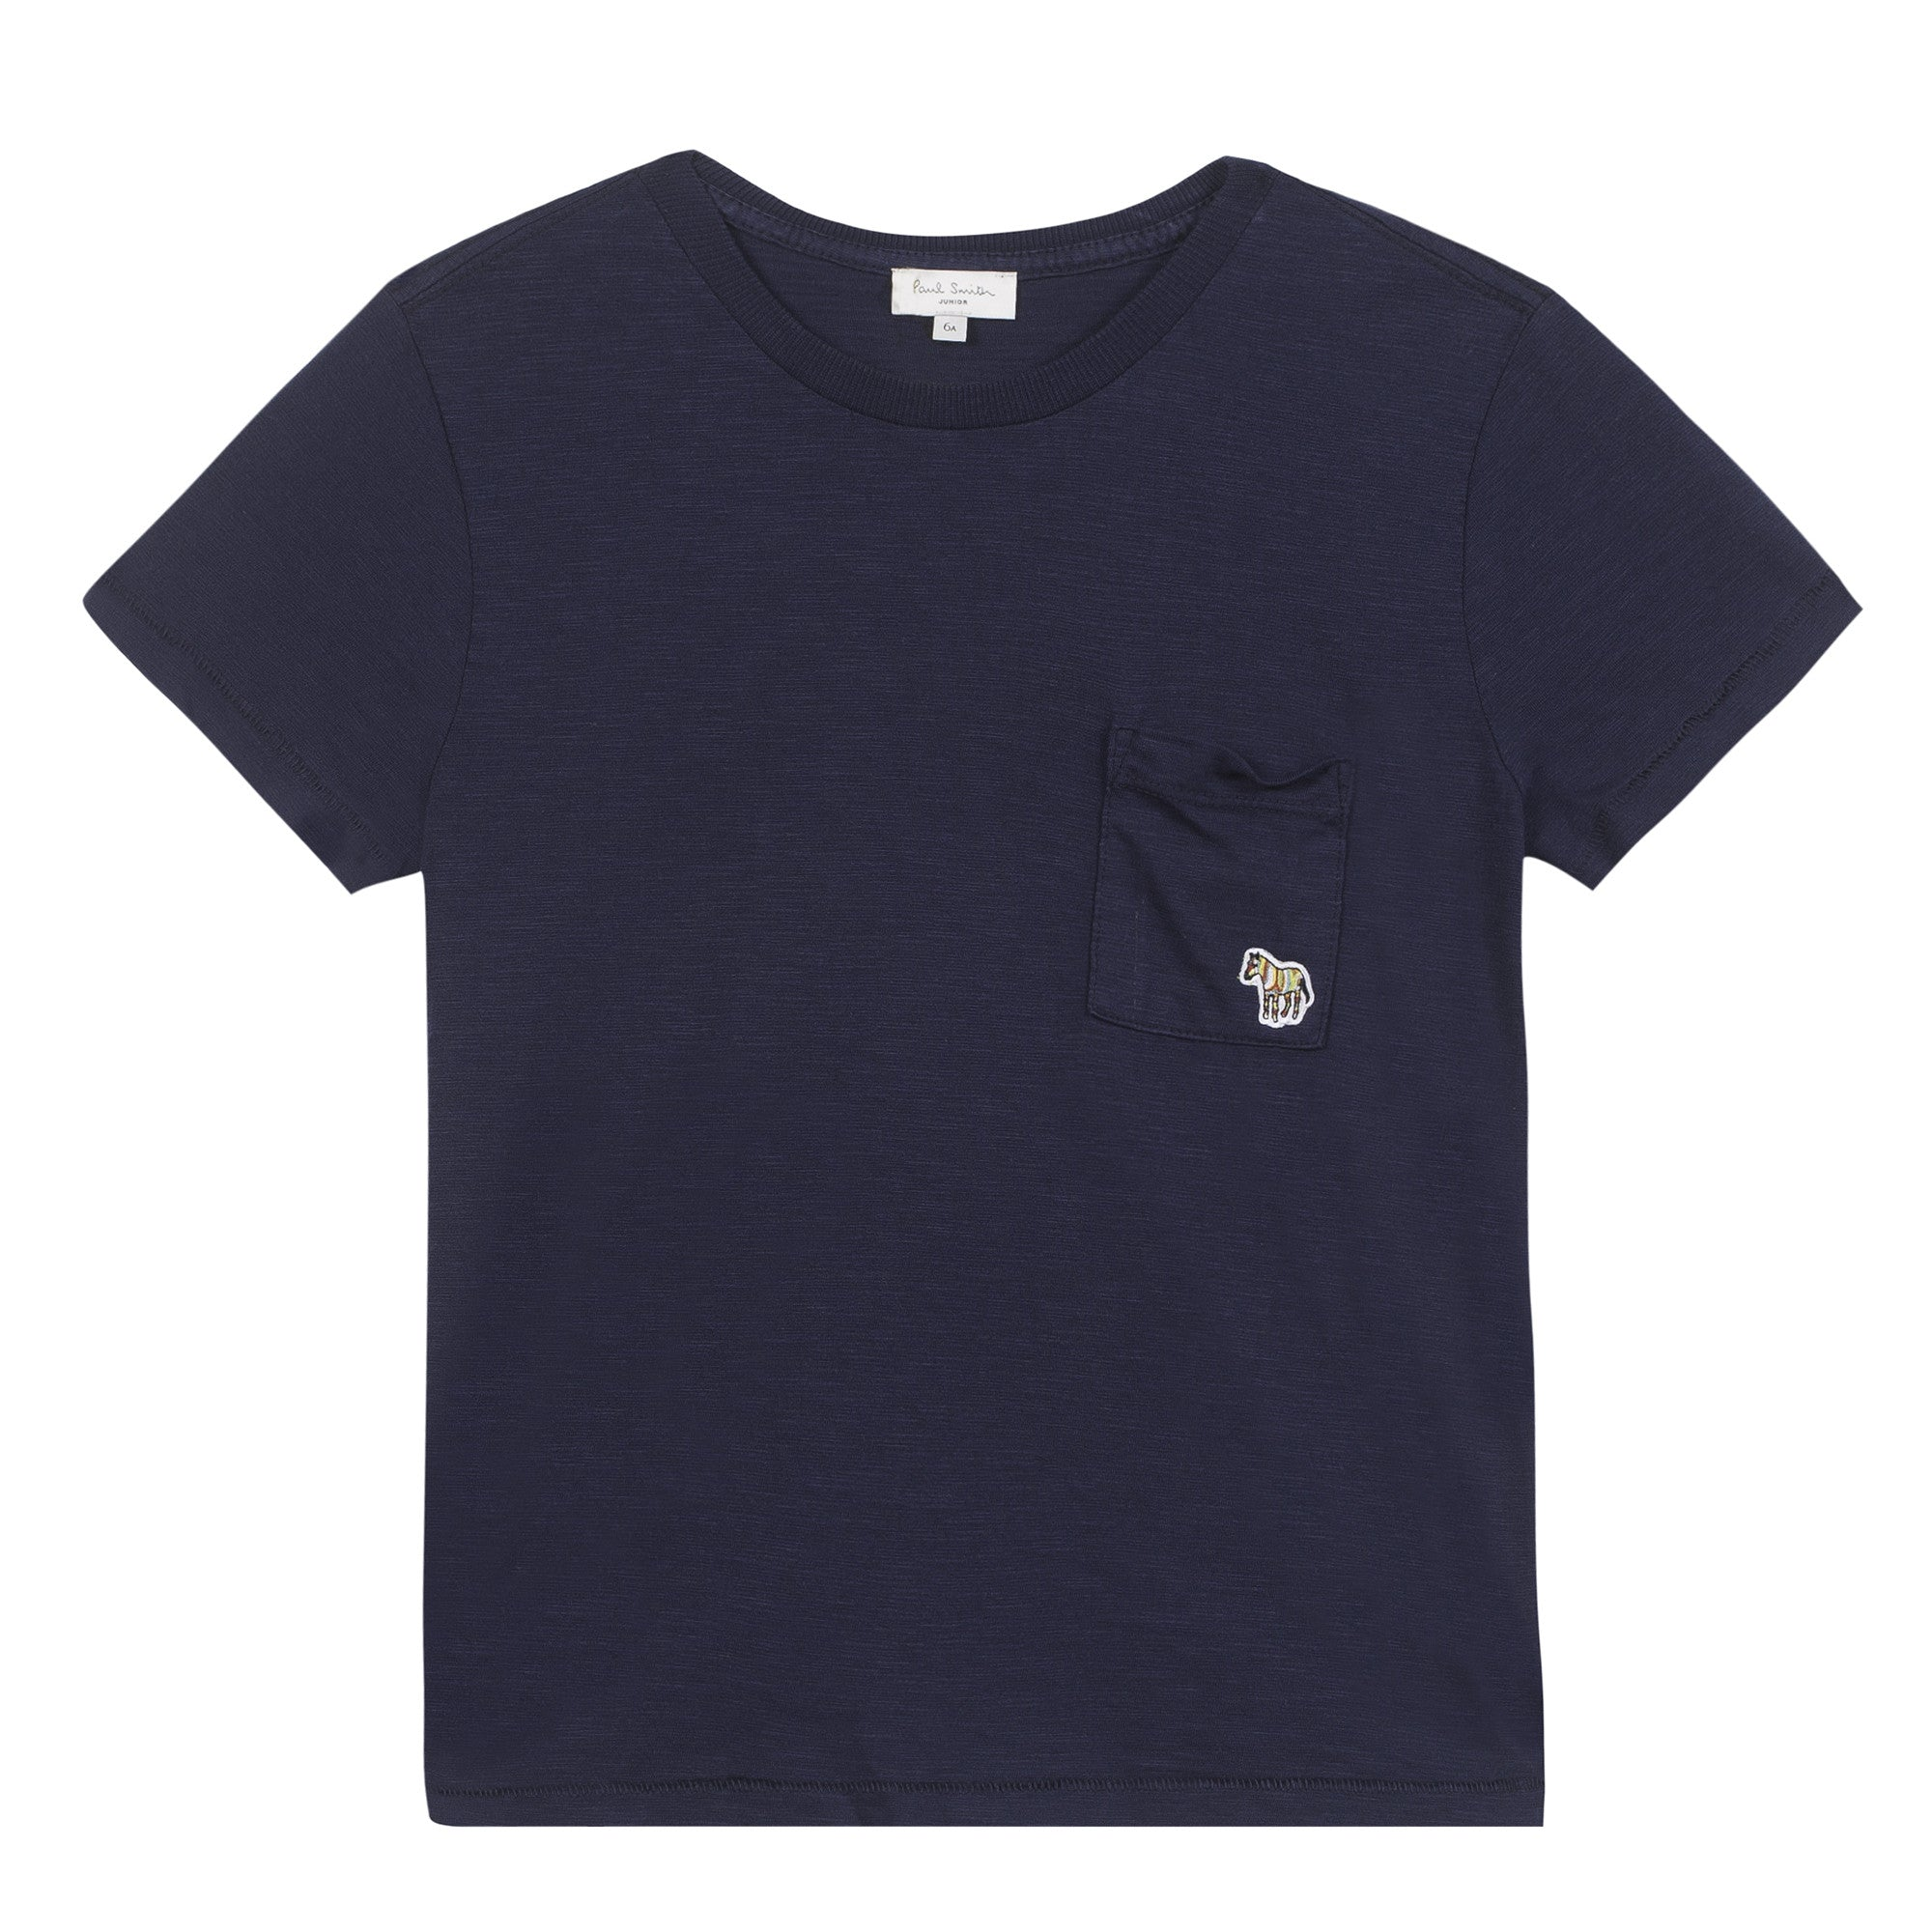 Paul Smith Navy Slub Tee - Ladida